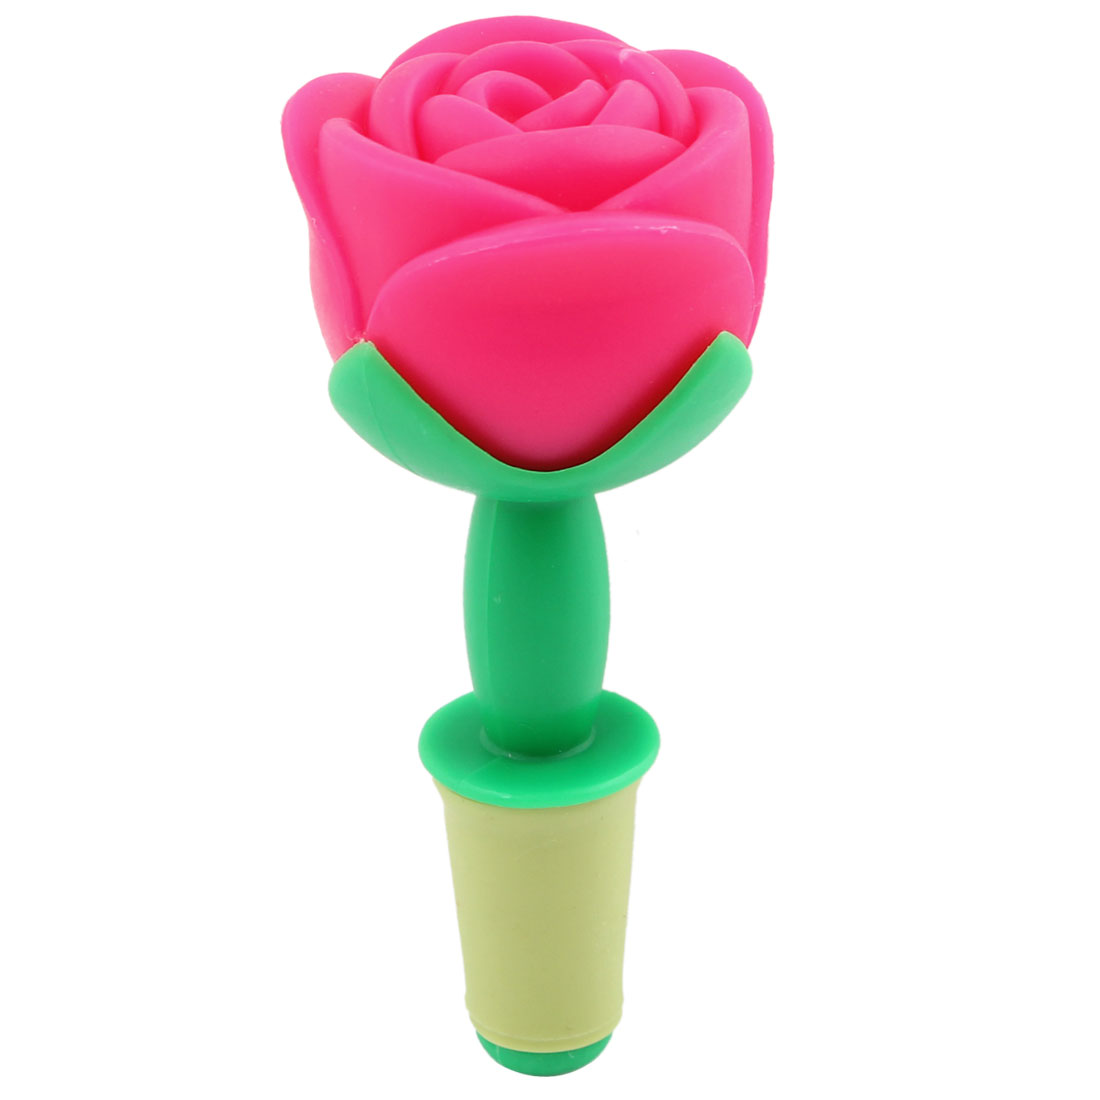 Fuchsia Plastic Rose Design Liquor Wine Bottle Seal Stopper